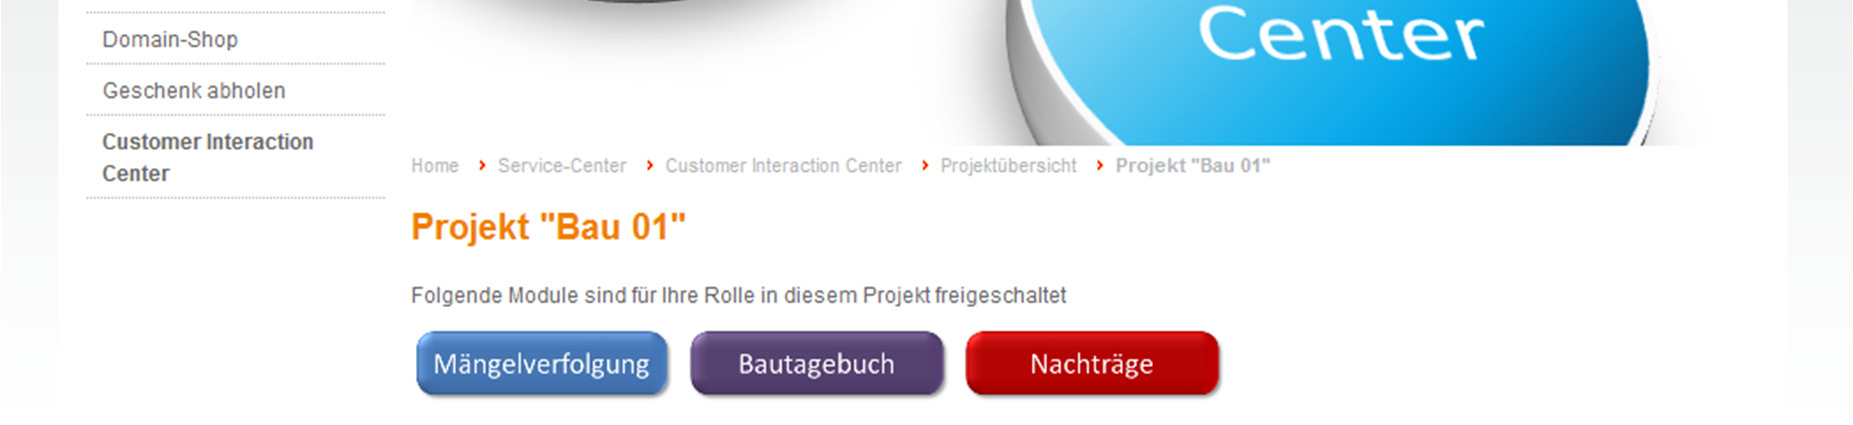 Customer Interaction Center Nach Einstieg in ein Projekt erhält der Kunde die